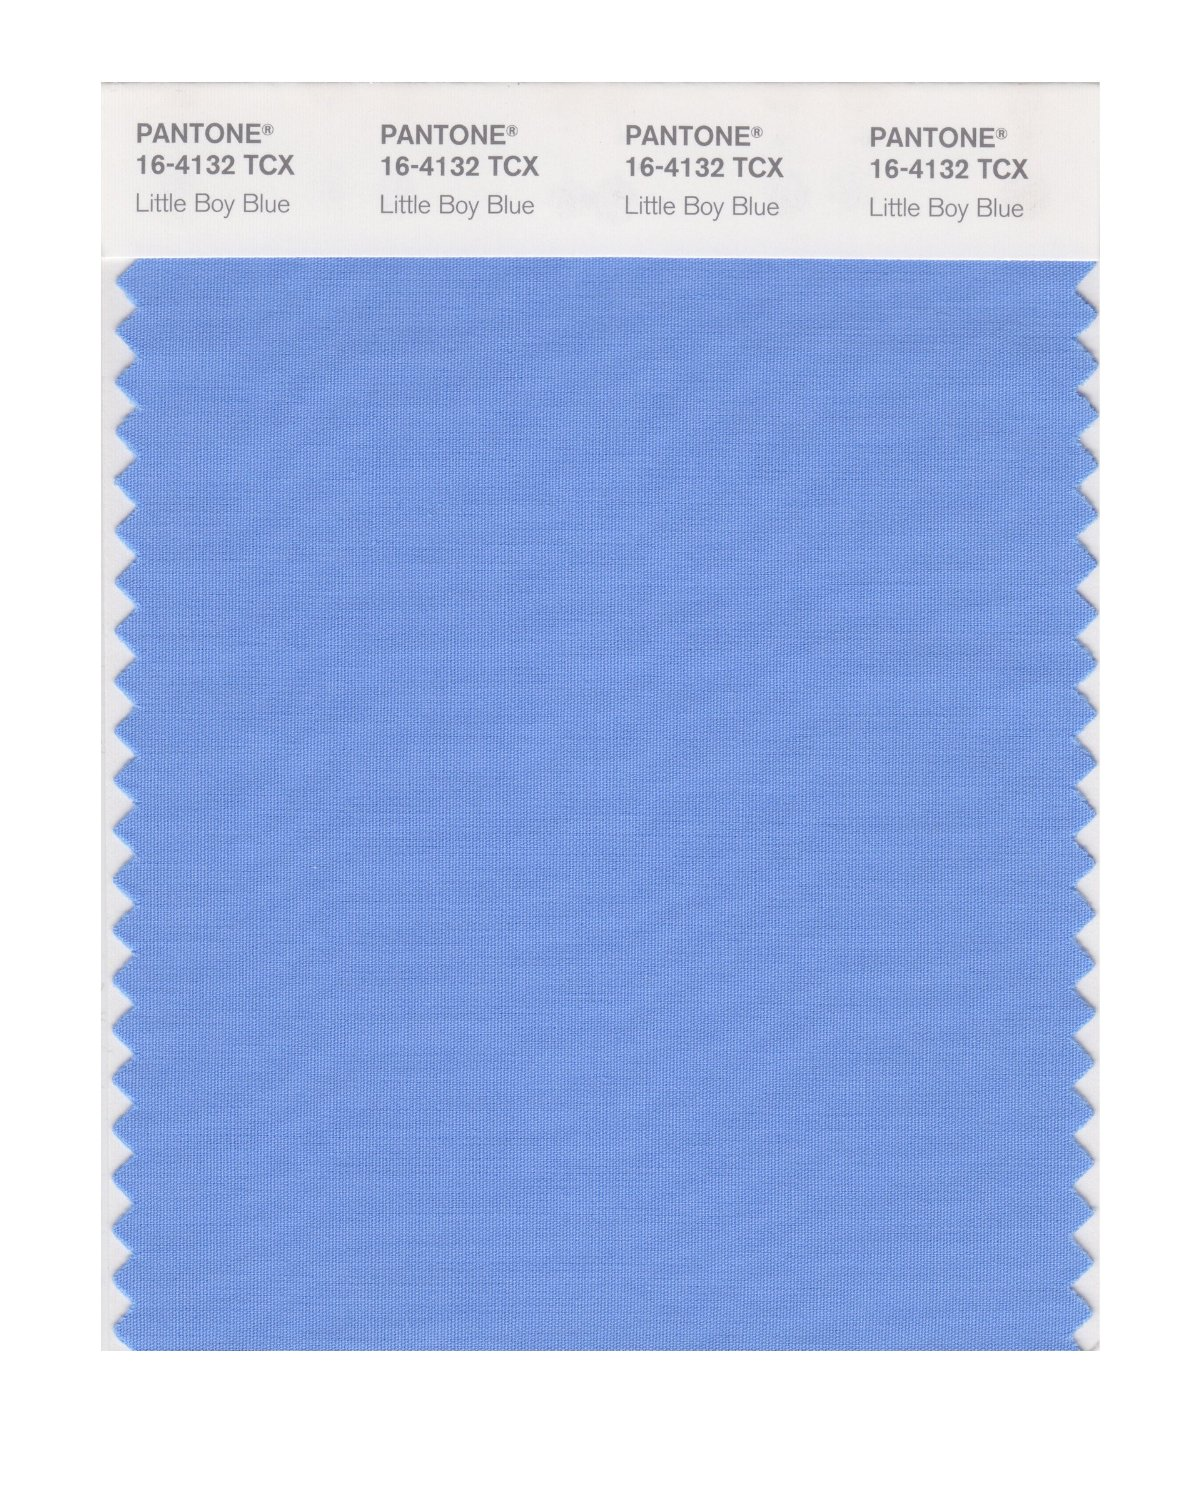 Pantone Smart Swatch 16-4132 Little Boy Blue